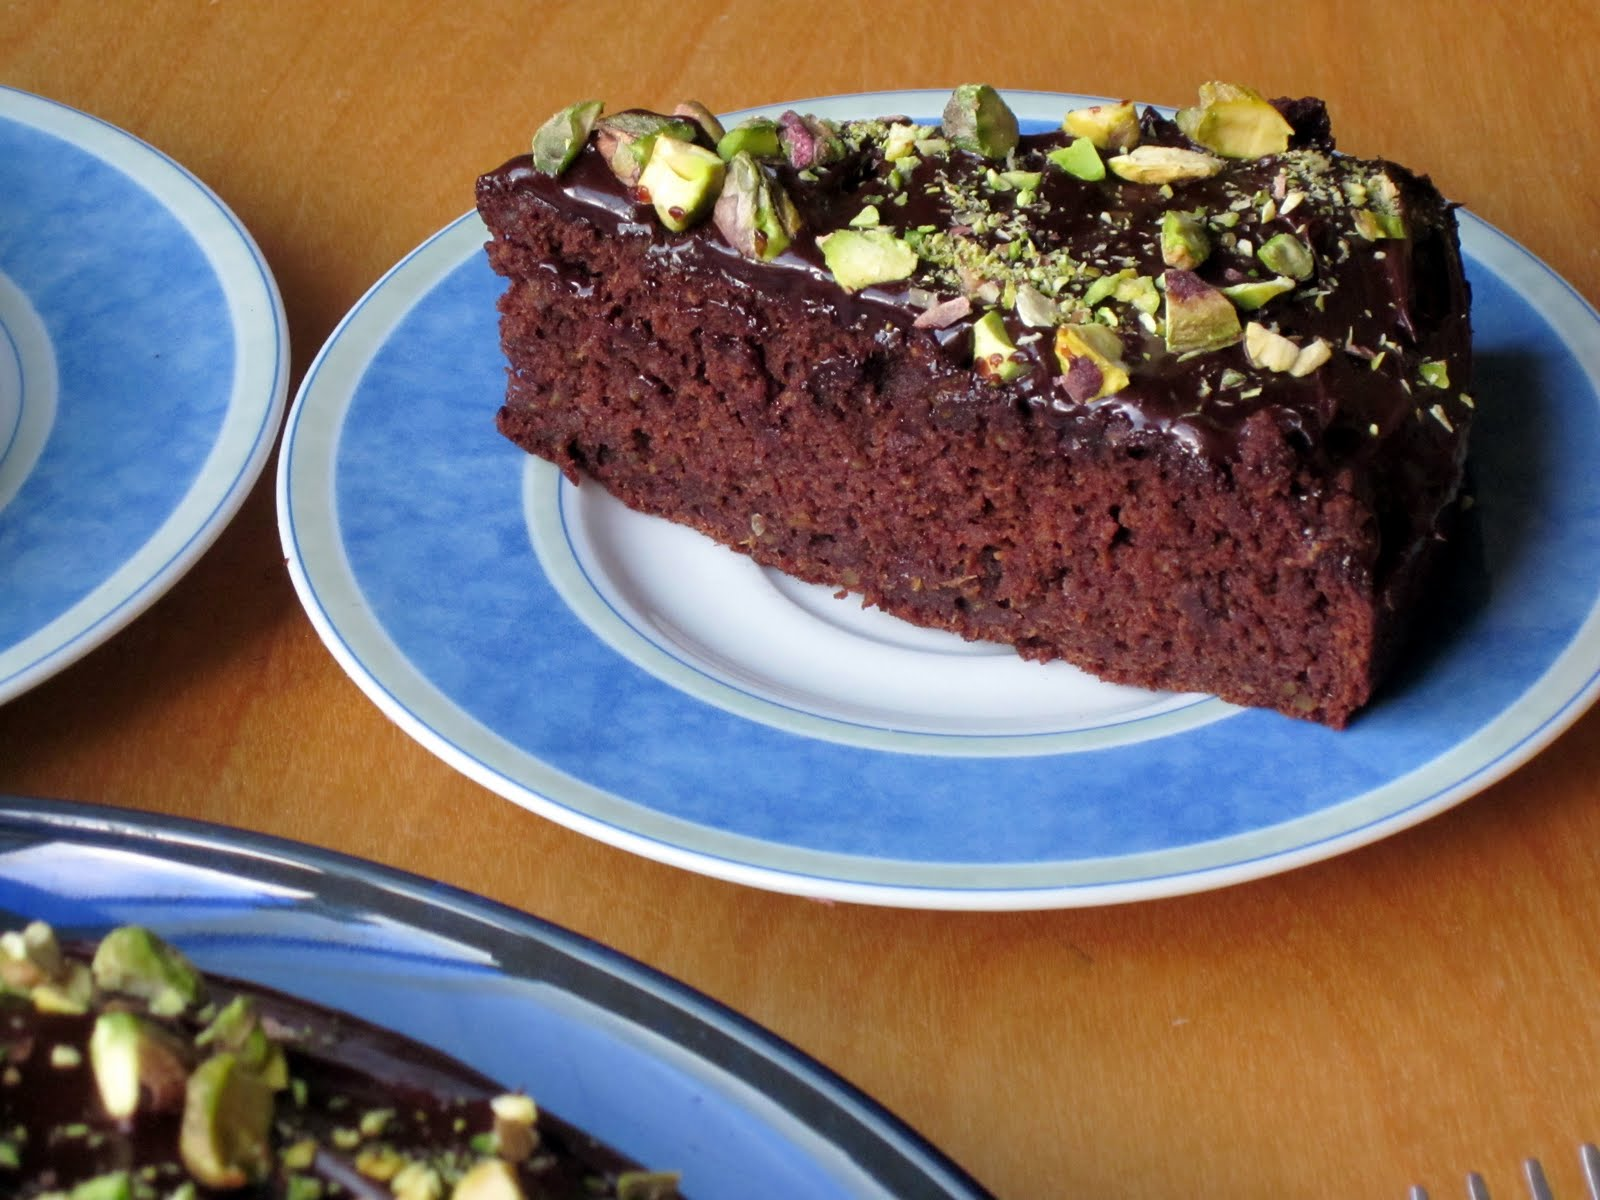 ... Pass the Greens: Chocolate Pistachio Cake: Dairy and Gluten Free